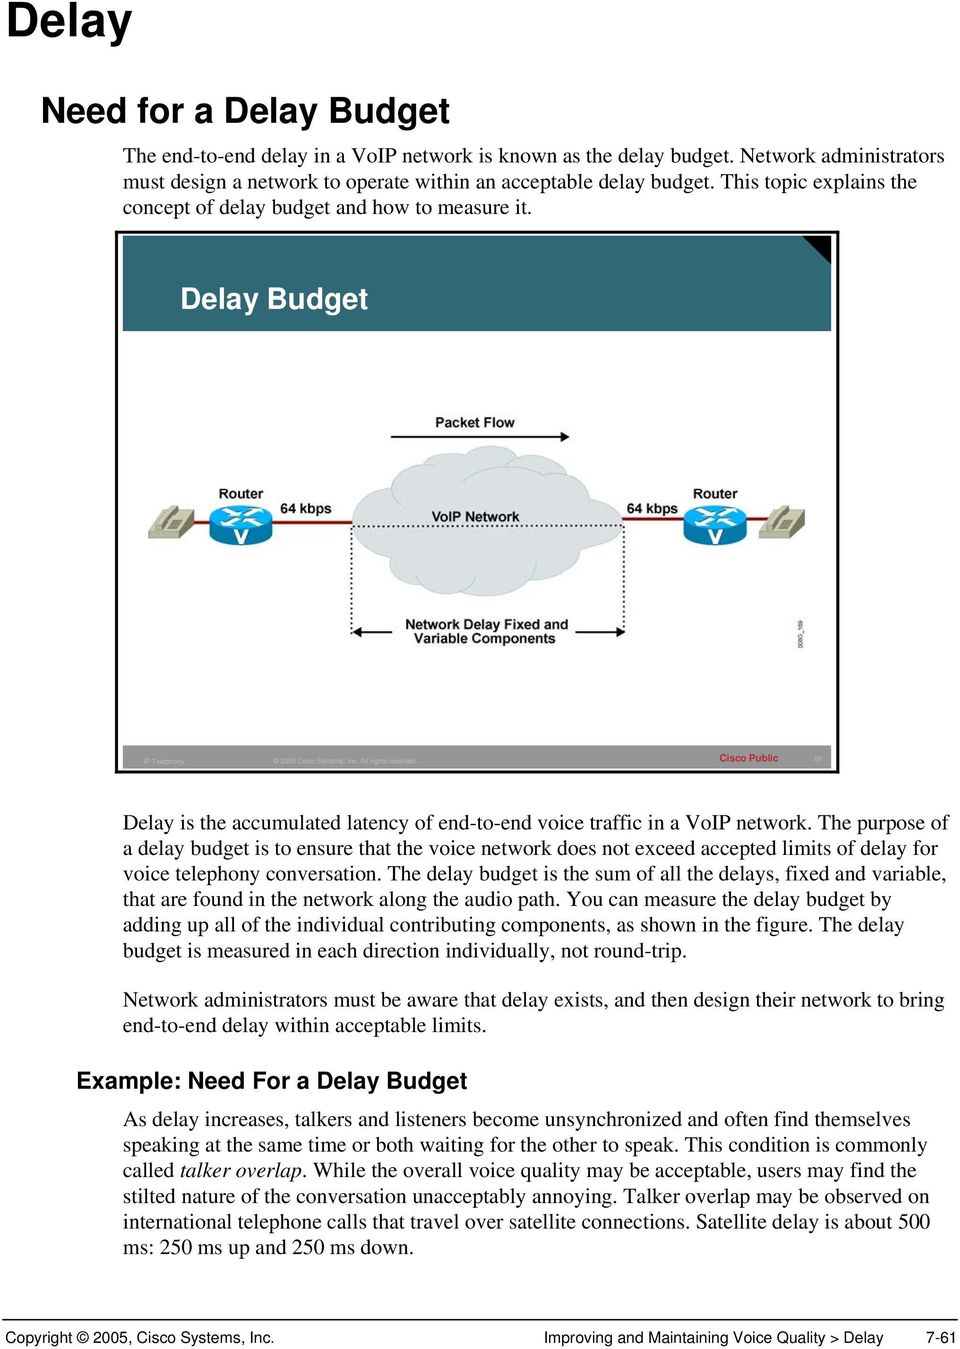 The purpose of a delay budget is to ensure that the voice network does not exceed accepted limits of delay for voice telephony conversation.